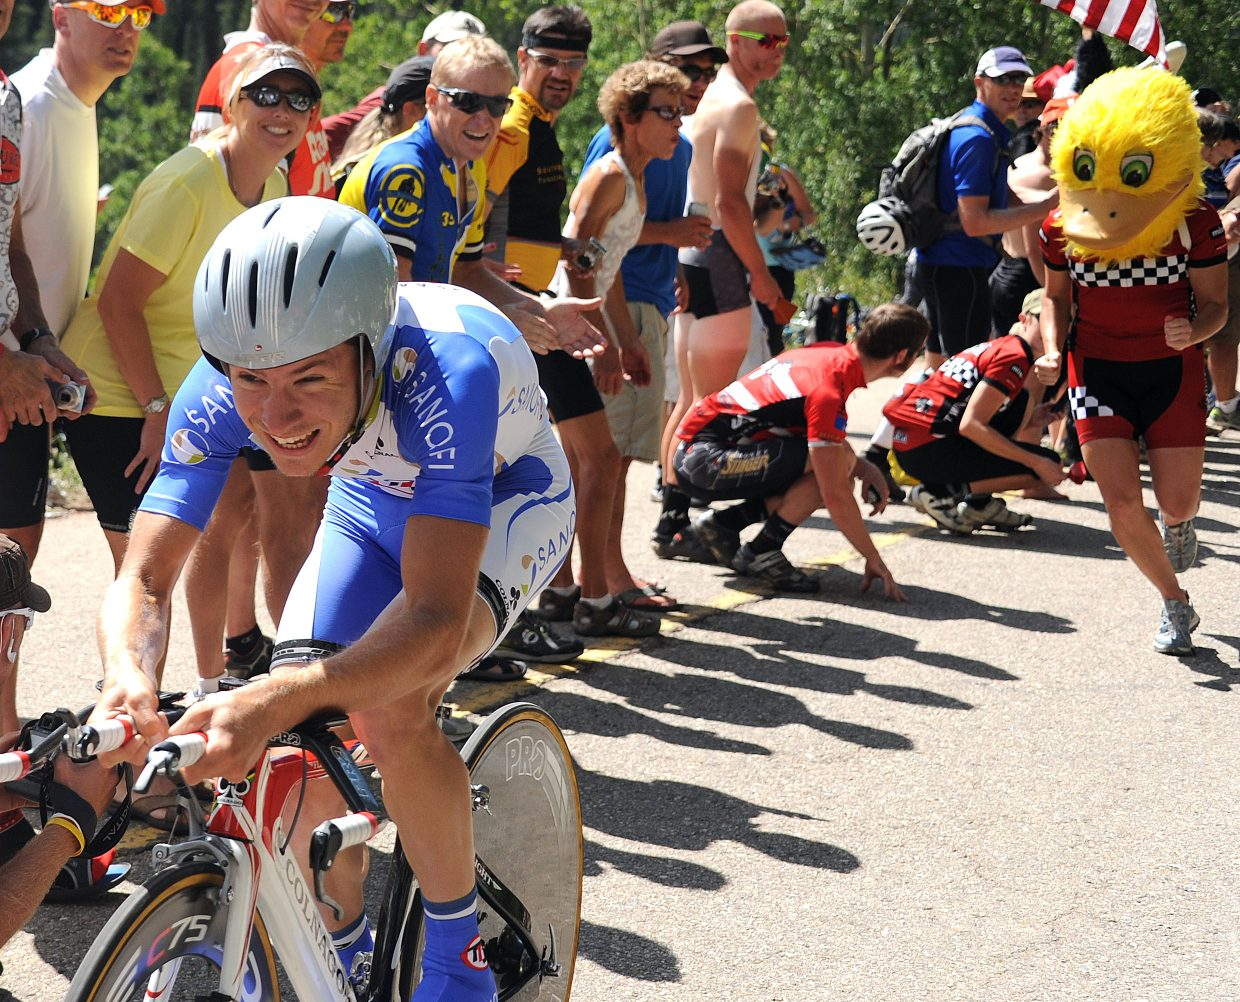 A woman in a duck head gives chase to a racer Thursday in the USA Pro Cycling Challenge in Vail. Spectators lined the streets during Stage 3 of the inaugural event.